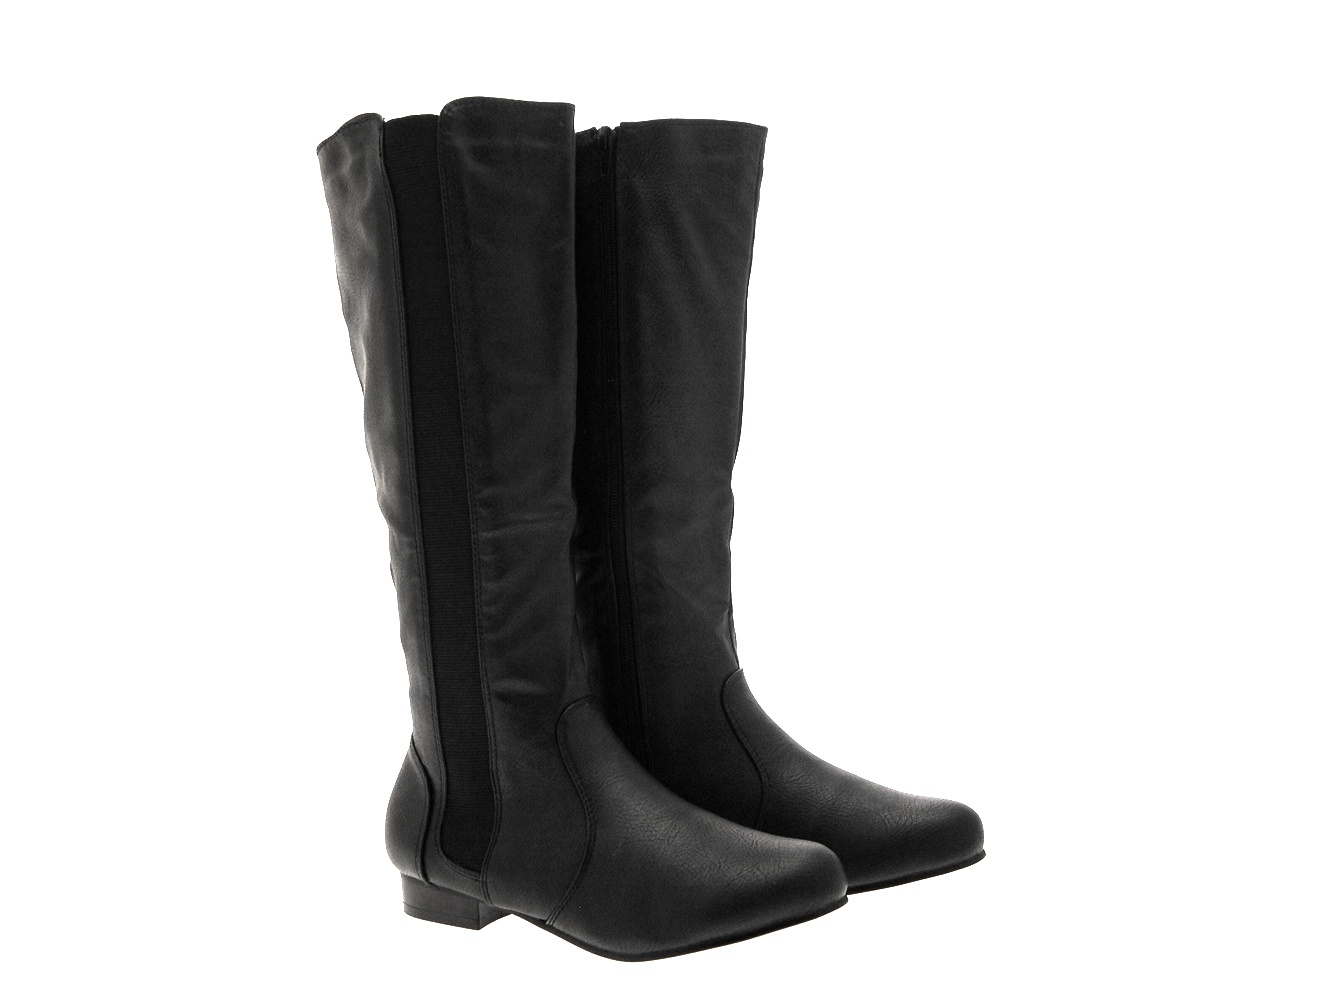 8fbdc1c18c0 WOMENS STRETCH WIDE CALF FLAT RIDING BOOTS KNEE HIGH BLACK LADIES ...